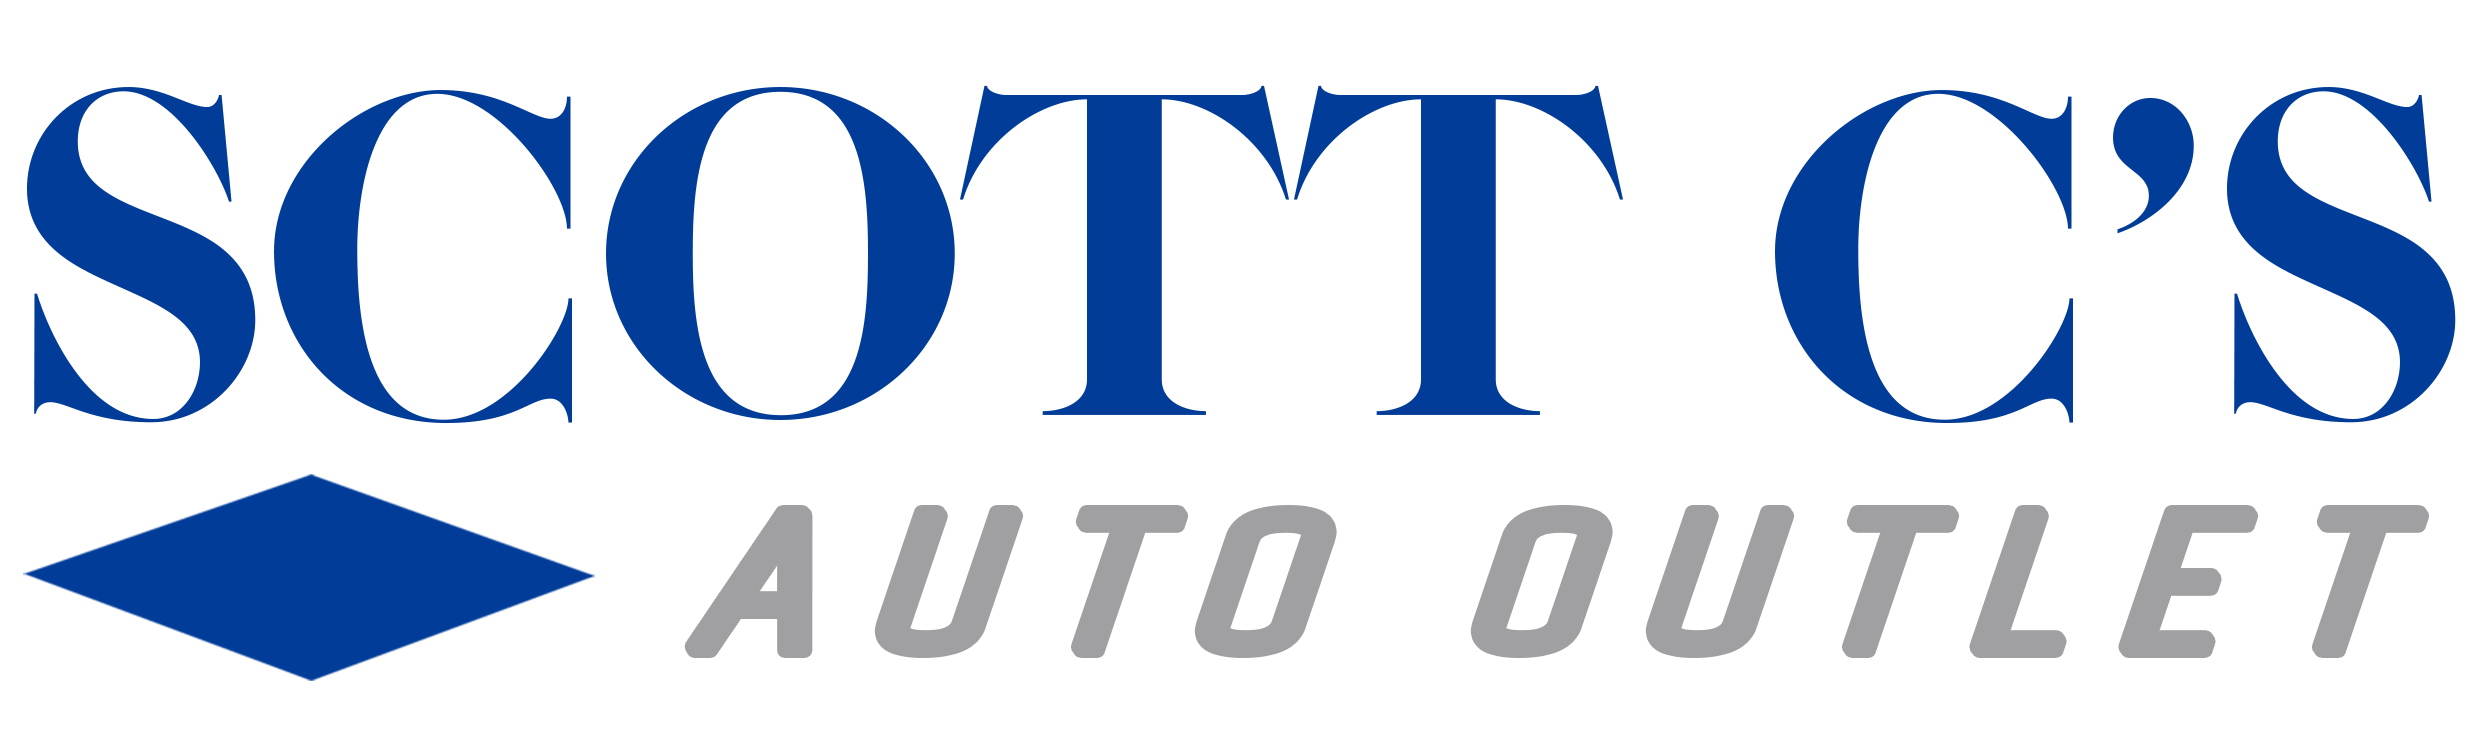 Scott C's Auto Outlet logo